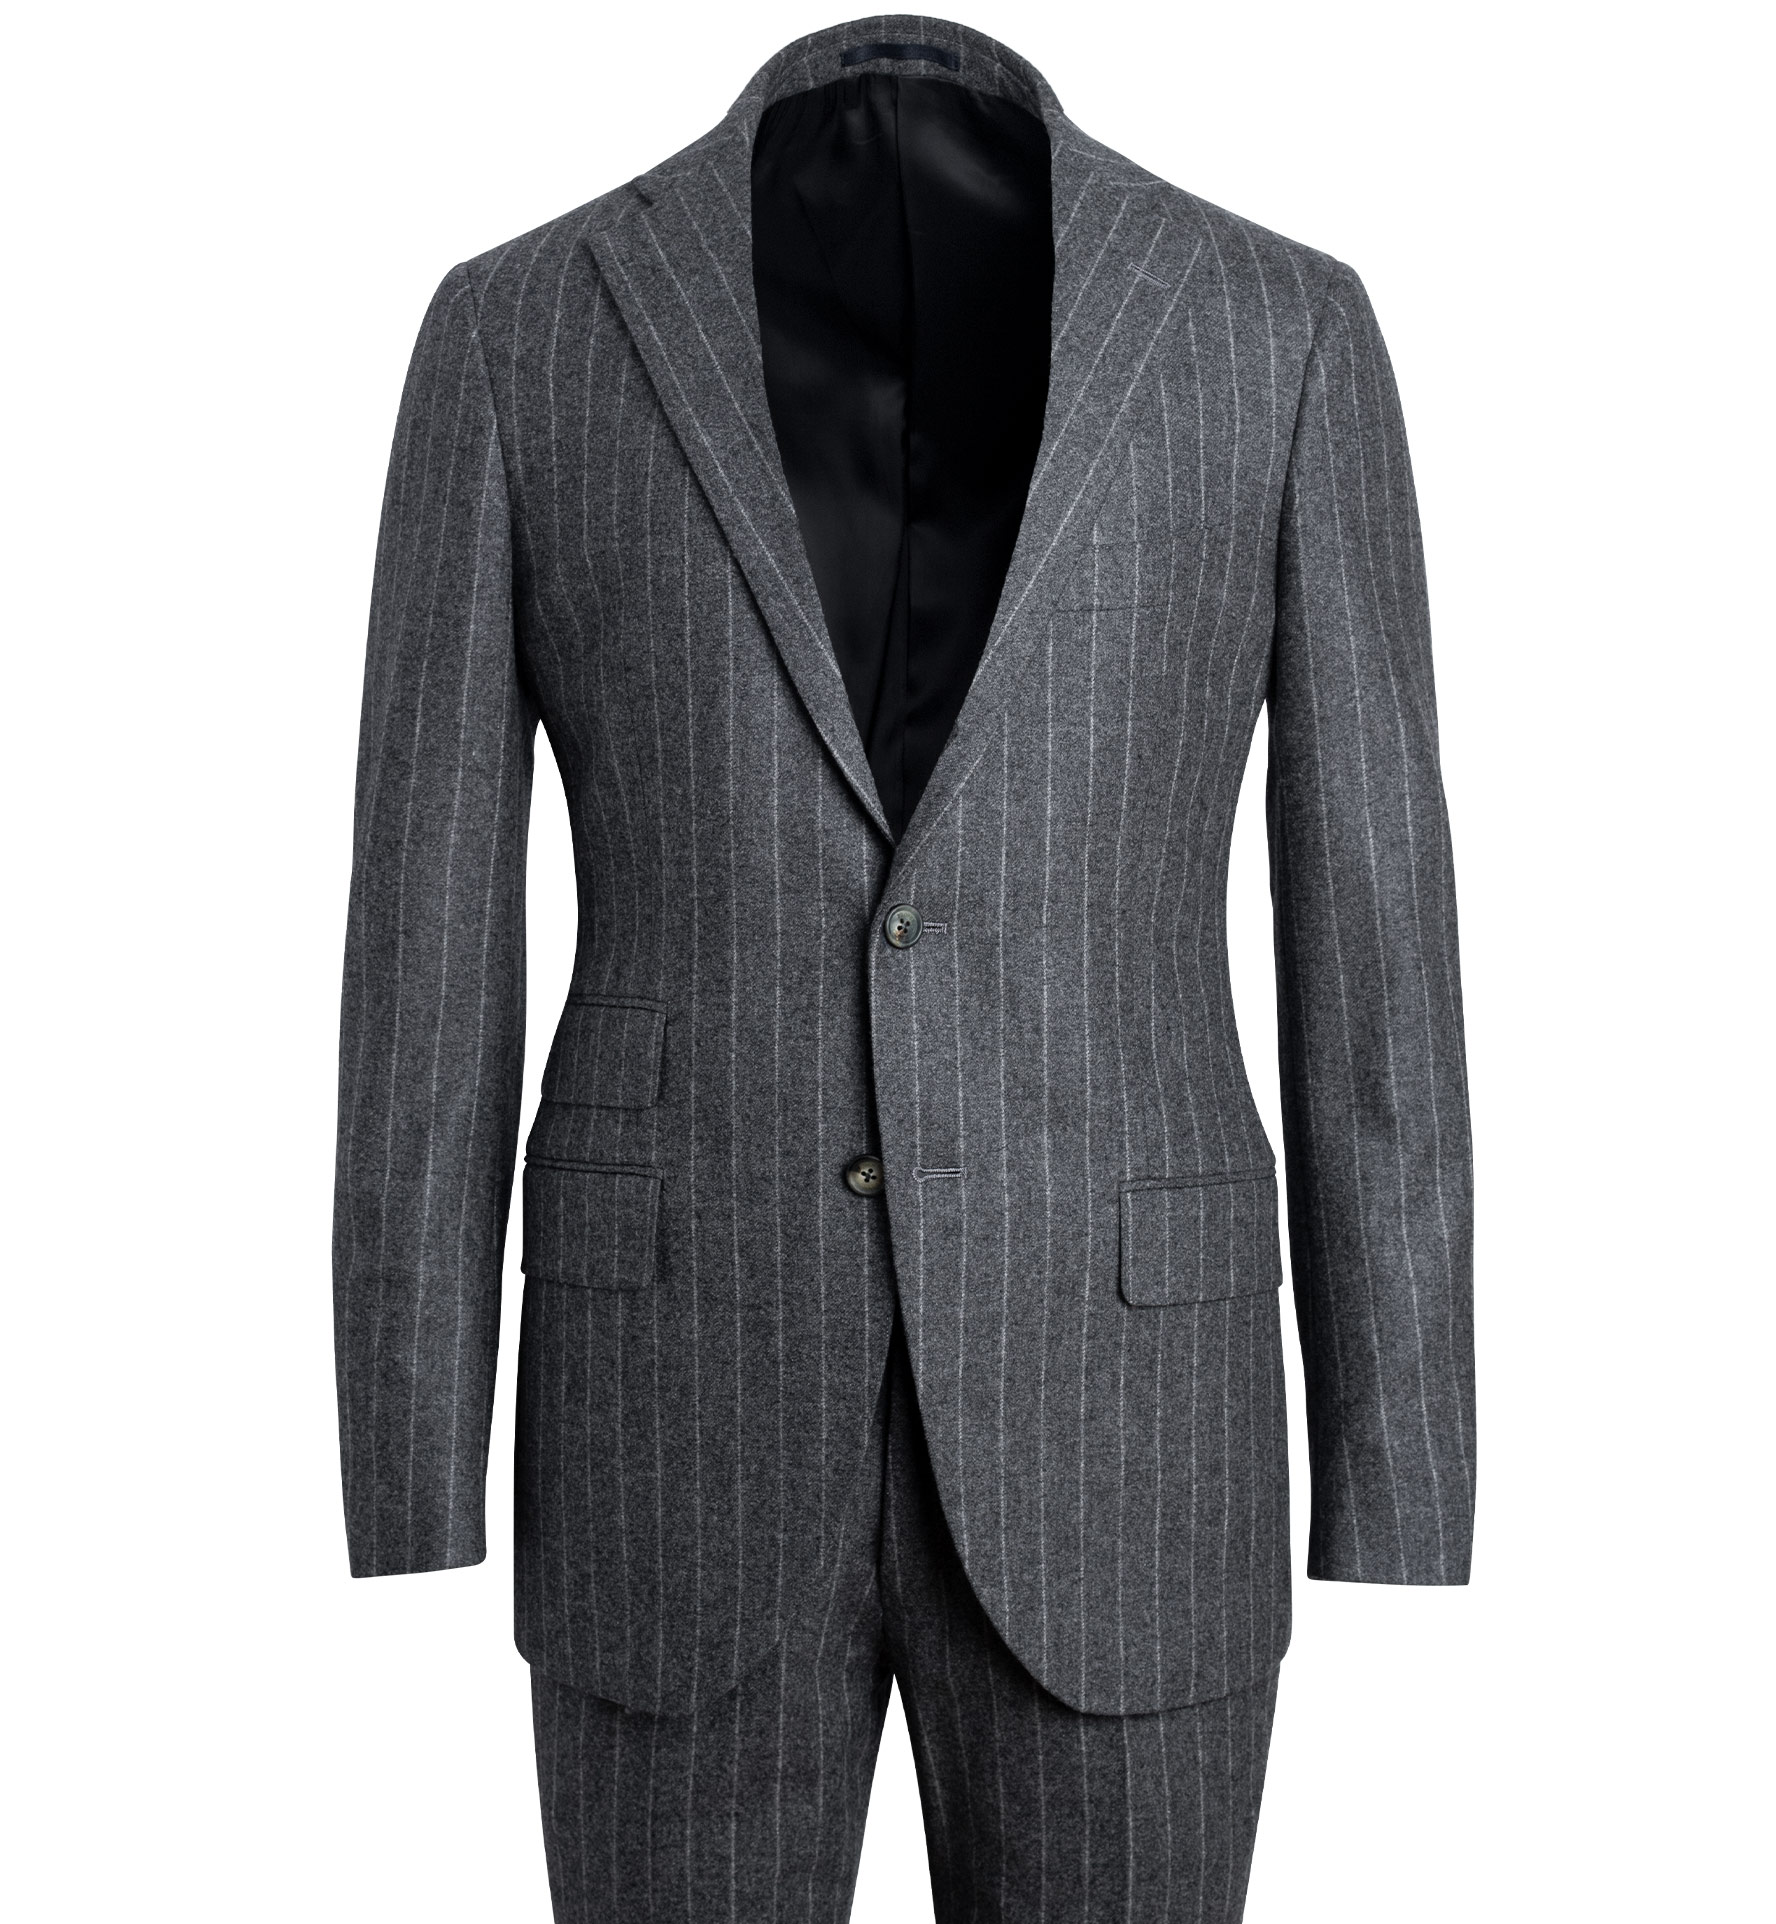 Zoom Image of Allen Grey Chalkstripe Wool Flannel Suit